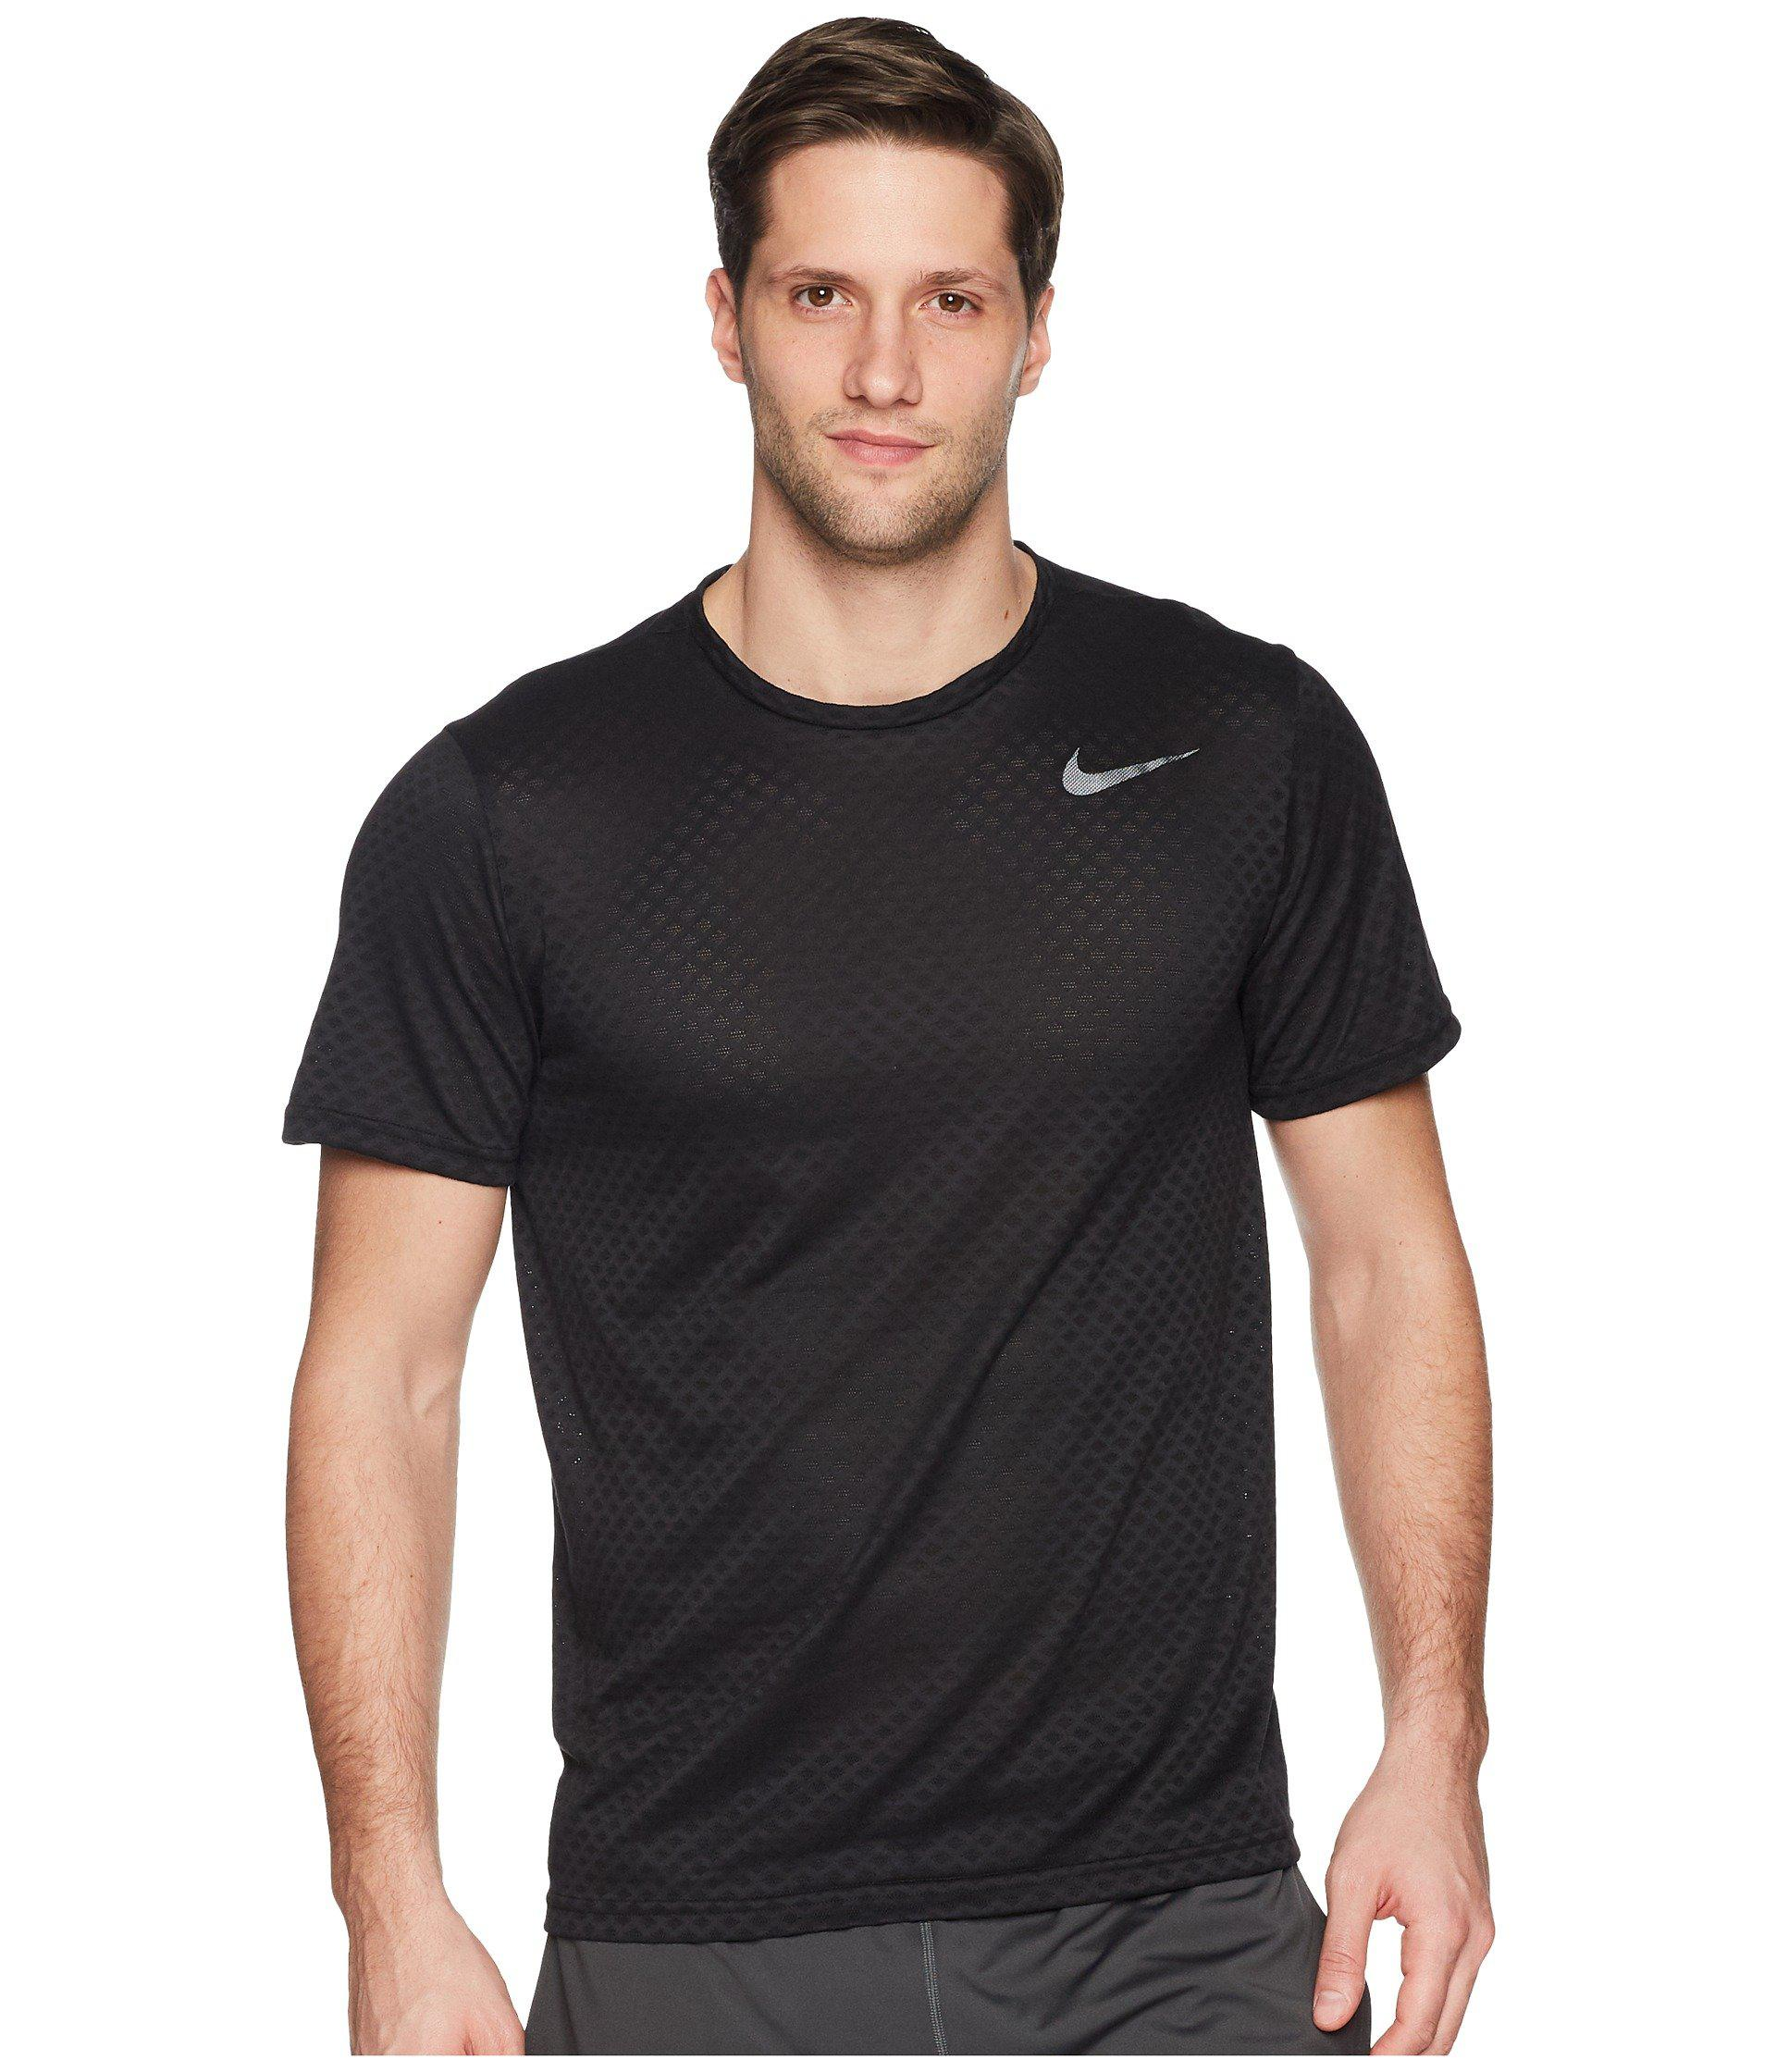 19da12ec46e7 Lyst - Nike Brt Top Short Sleeve Vent in Black for Men